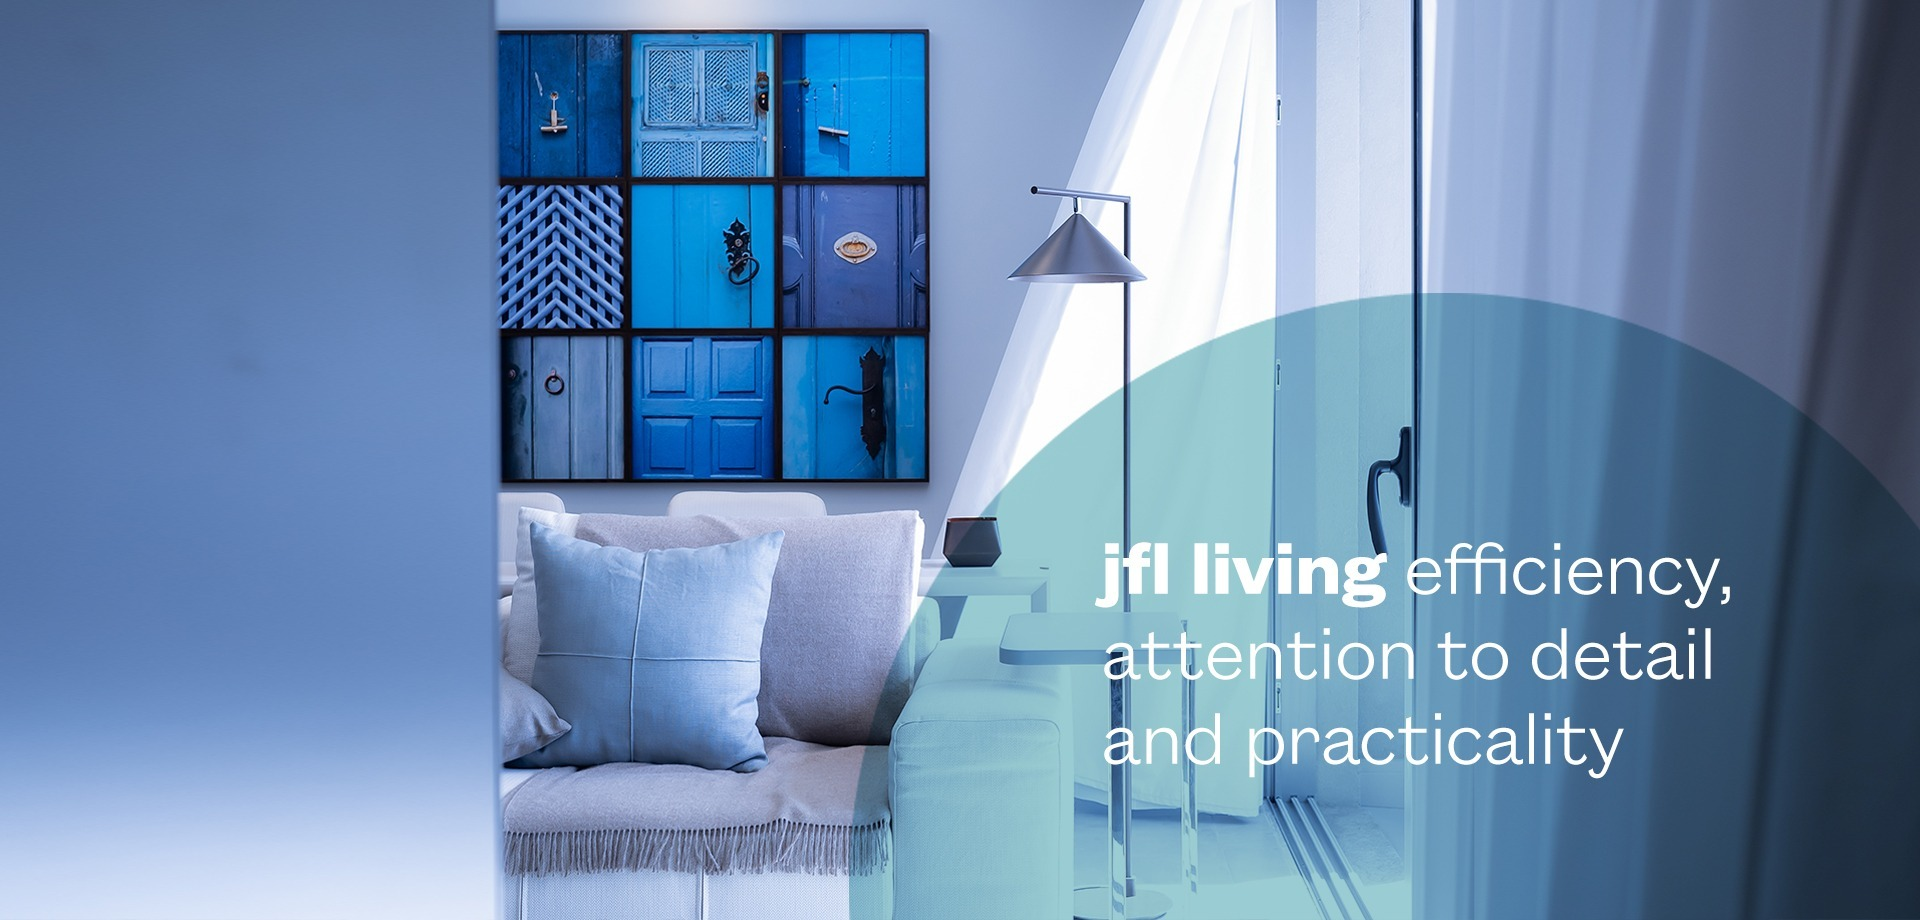 JFLLiving Desk 1 - A JFL Living EN